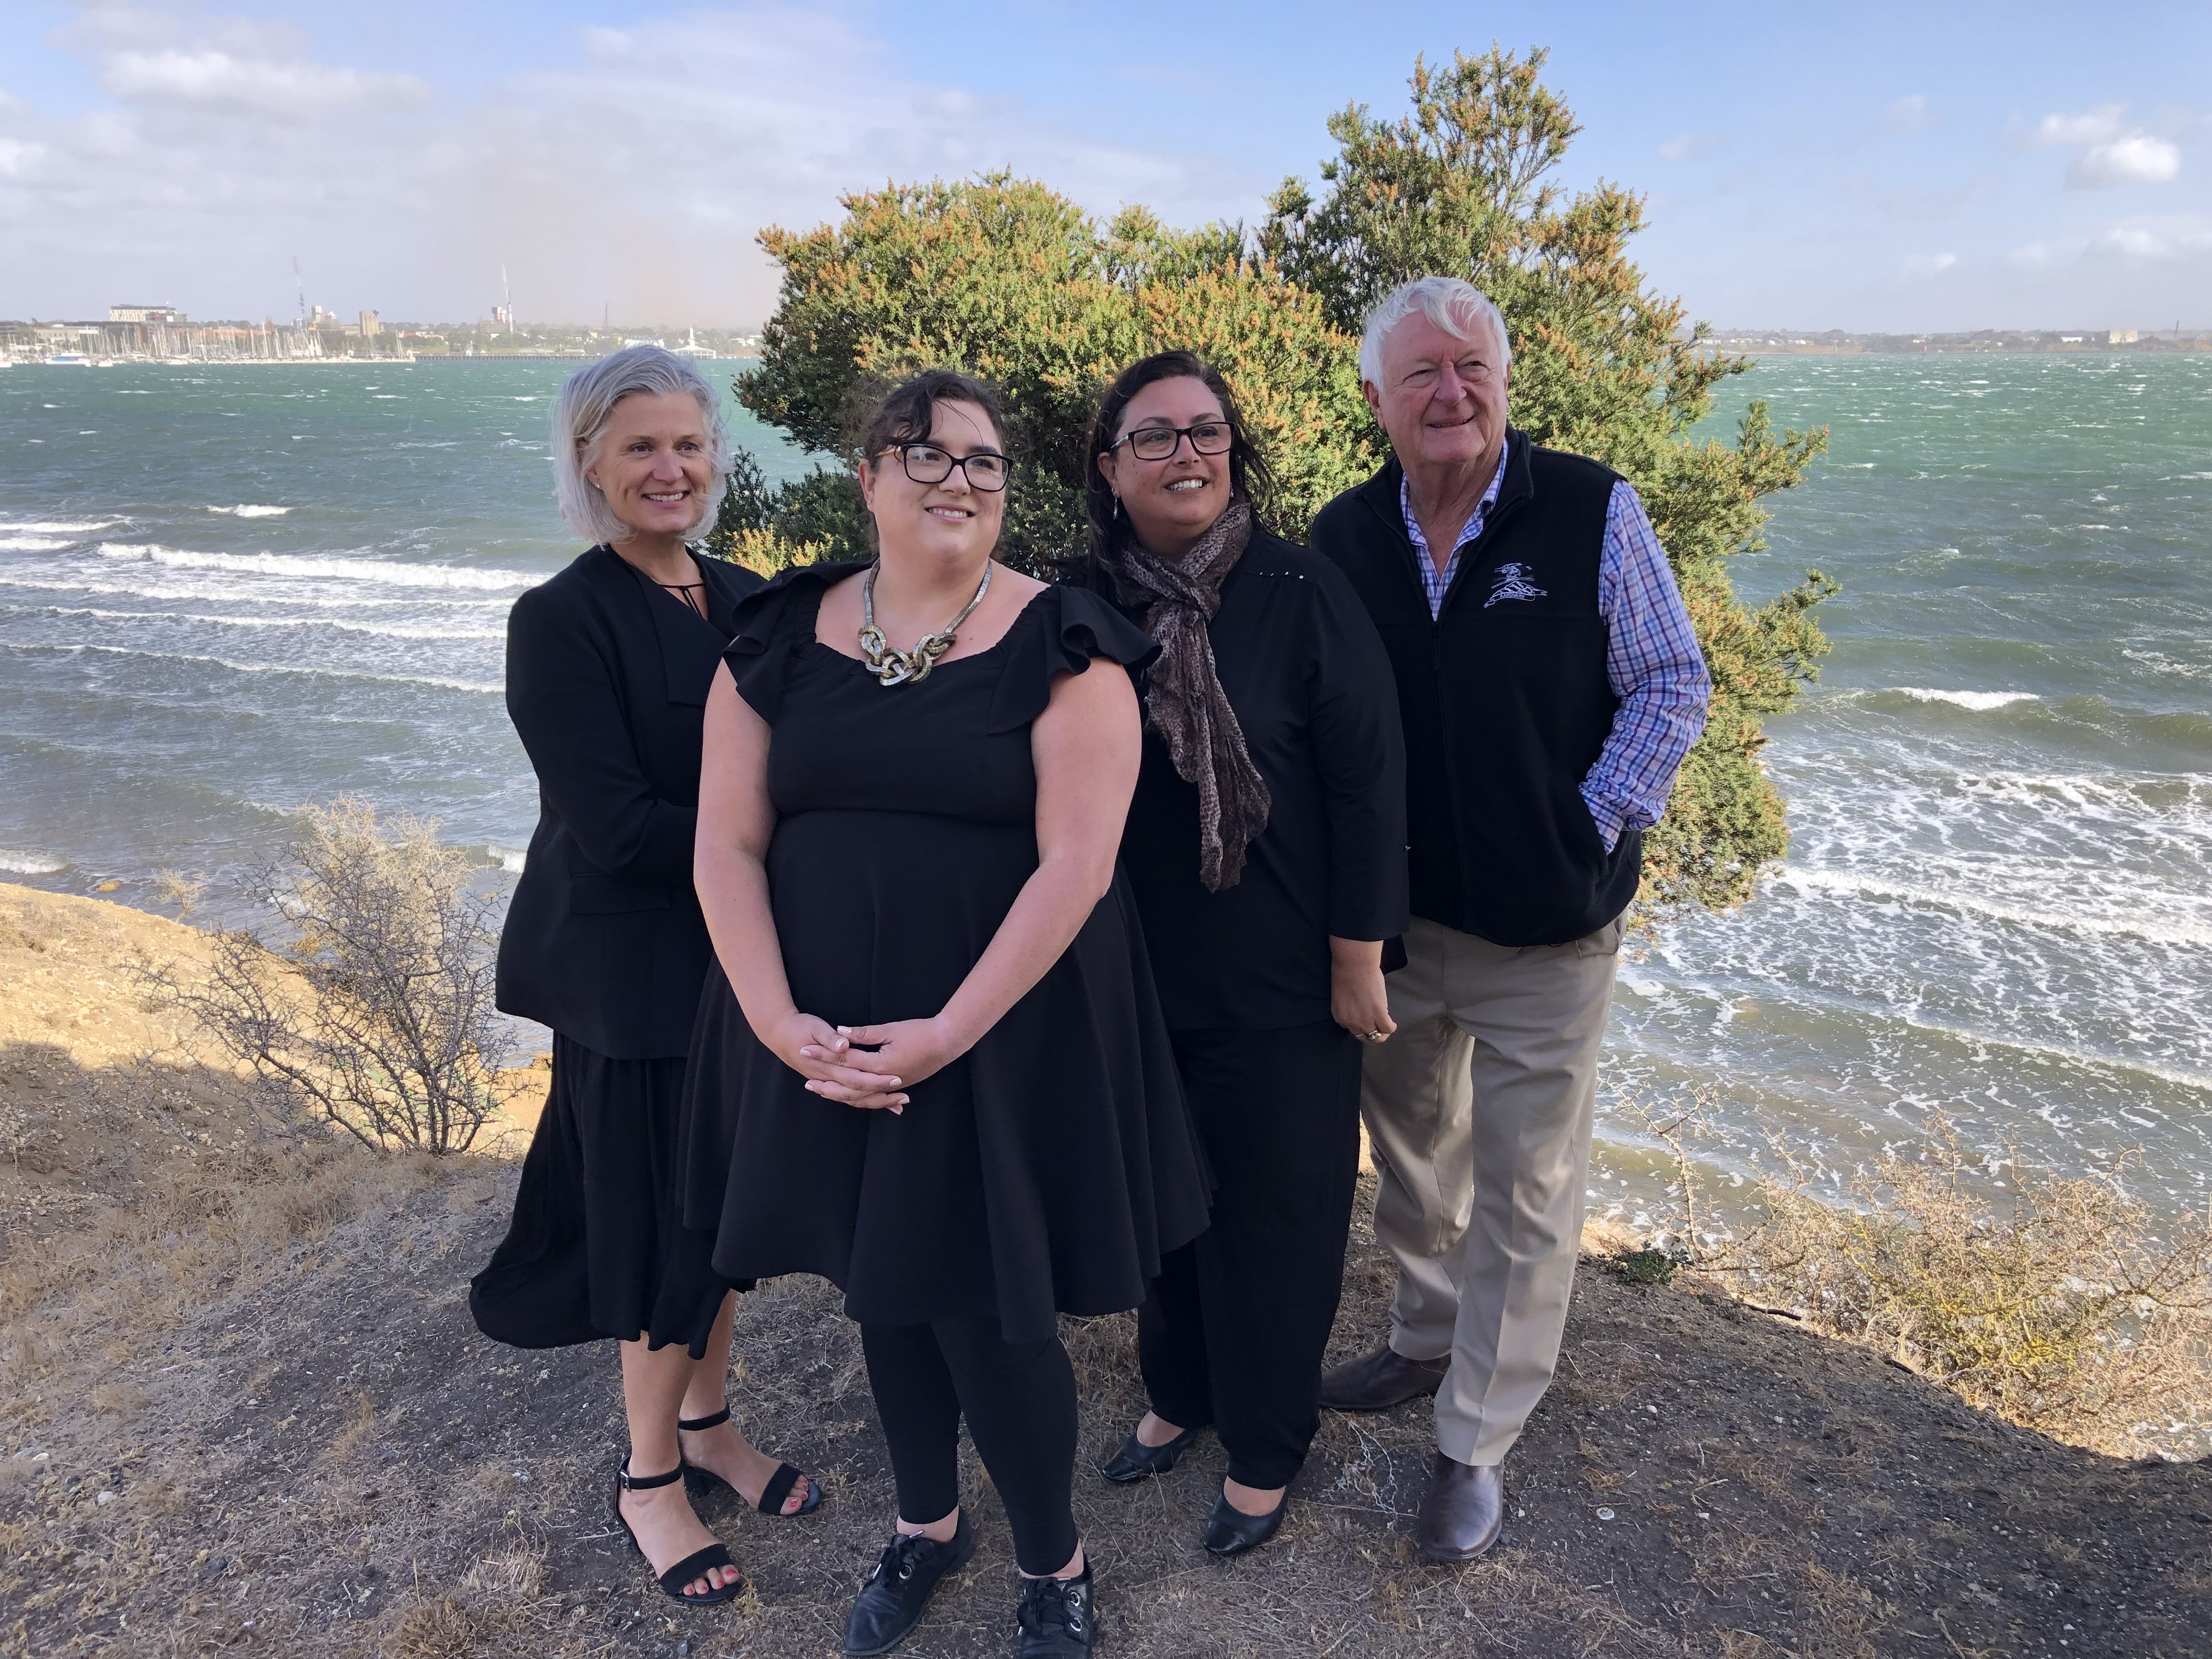 TAC's Megan Jacobs, TAC client Melinda Dine, Cr Kylie Grzybek and CrJim Mason from City of Greater Geelong at the location of a new road trauma memorial